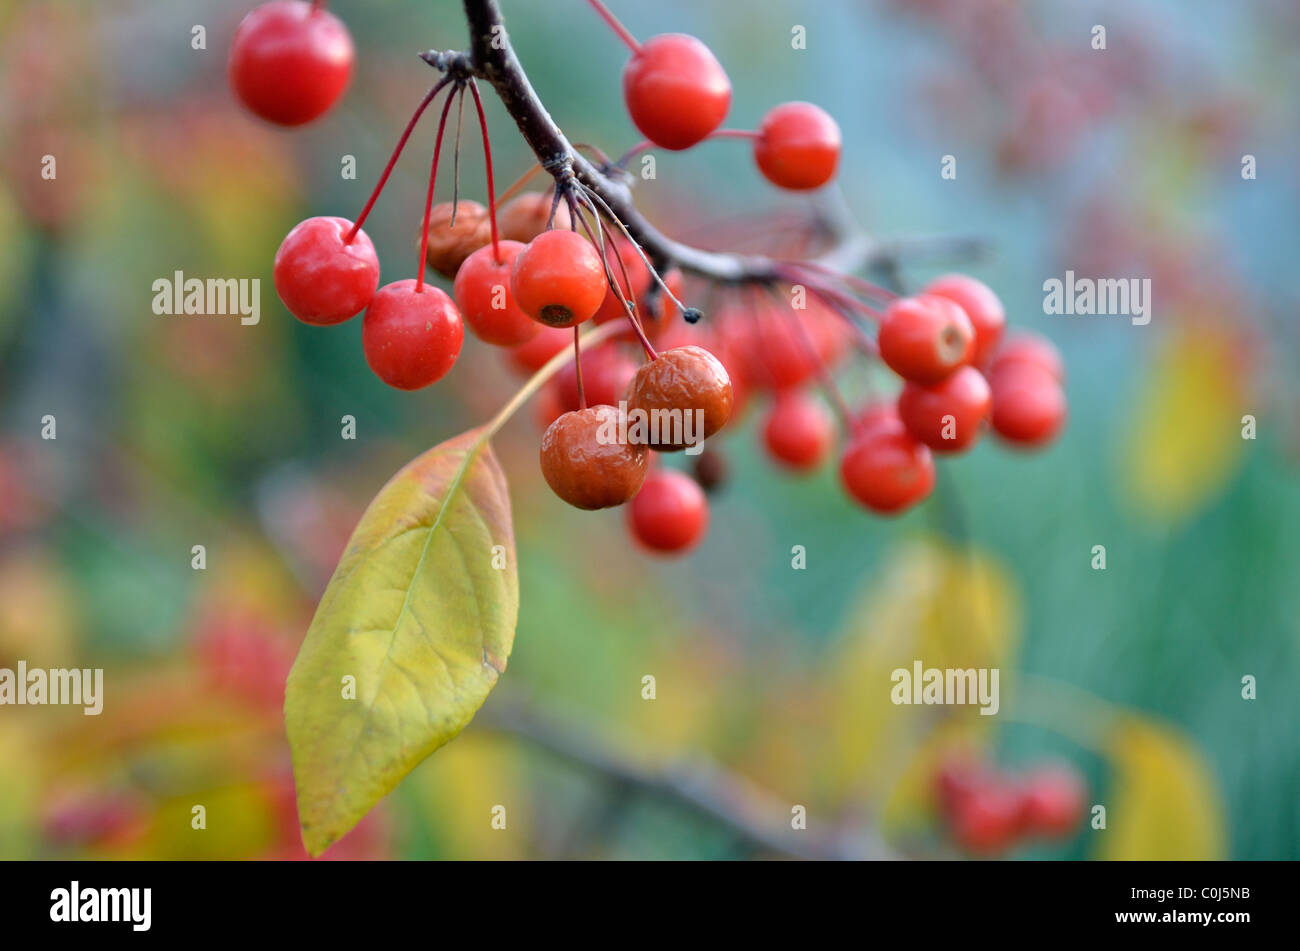 Close up image of crabapple fruits, Talus Rosaceae, hanging from a tree. USA. - Stock Image